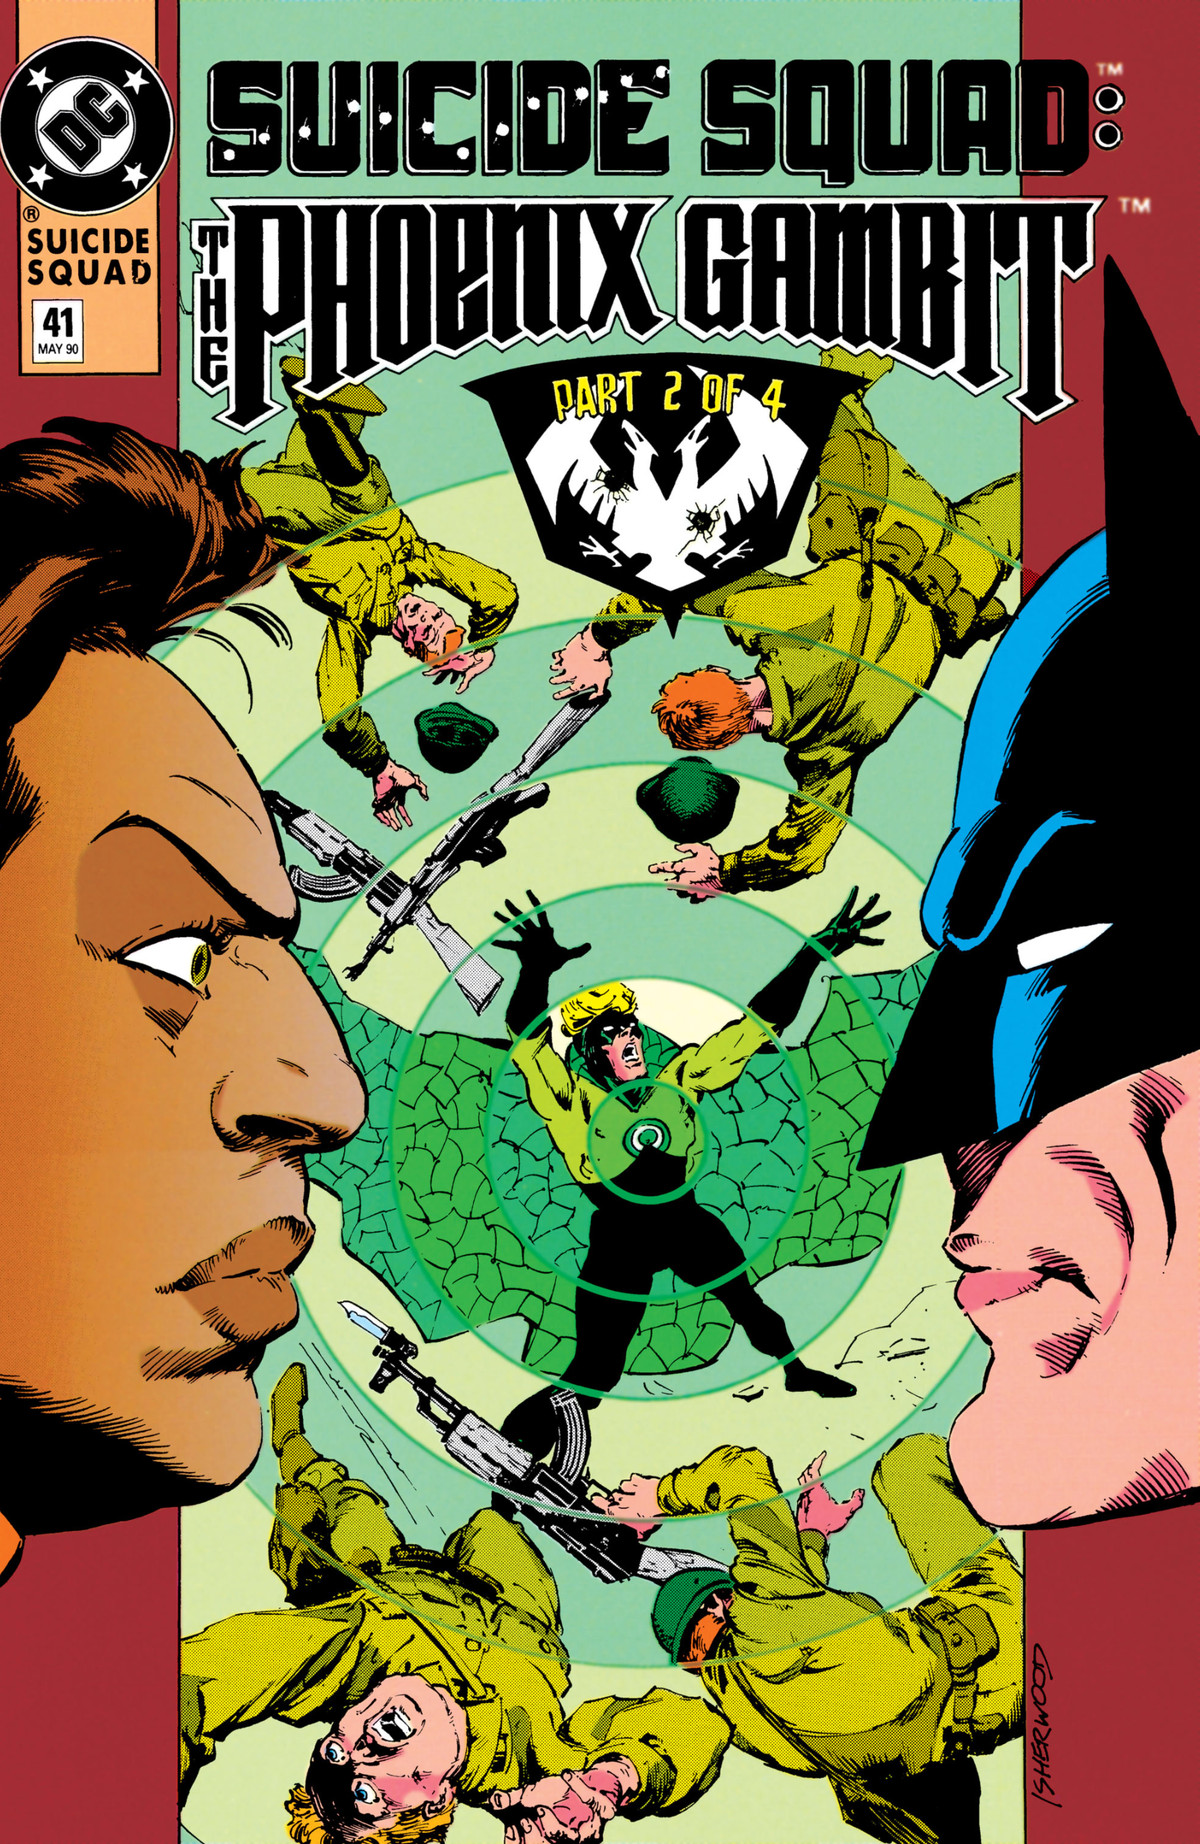 Batman and Amanda Waller stare each other down as Count Vertigo takes down soldiers on the cover of Suicide Squad #41, DC Comics (1990).